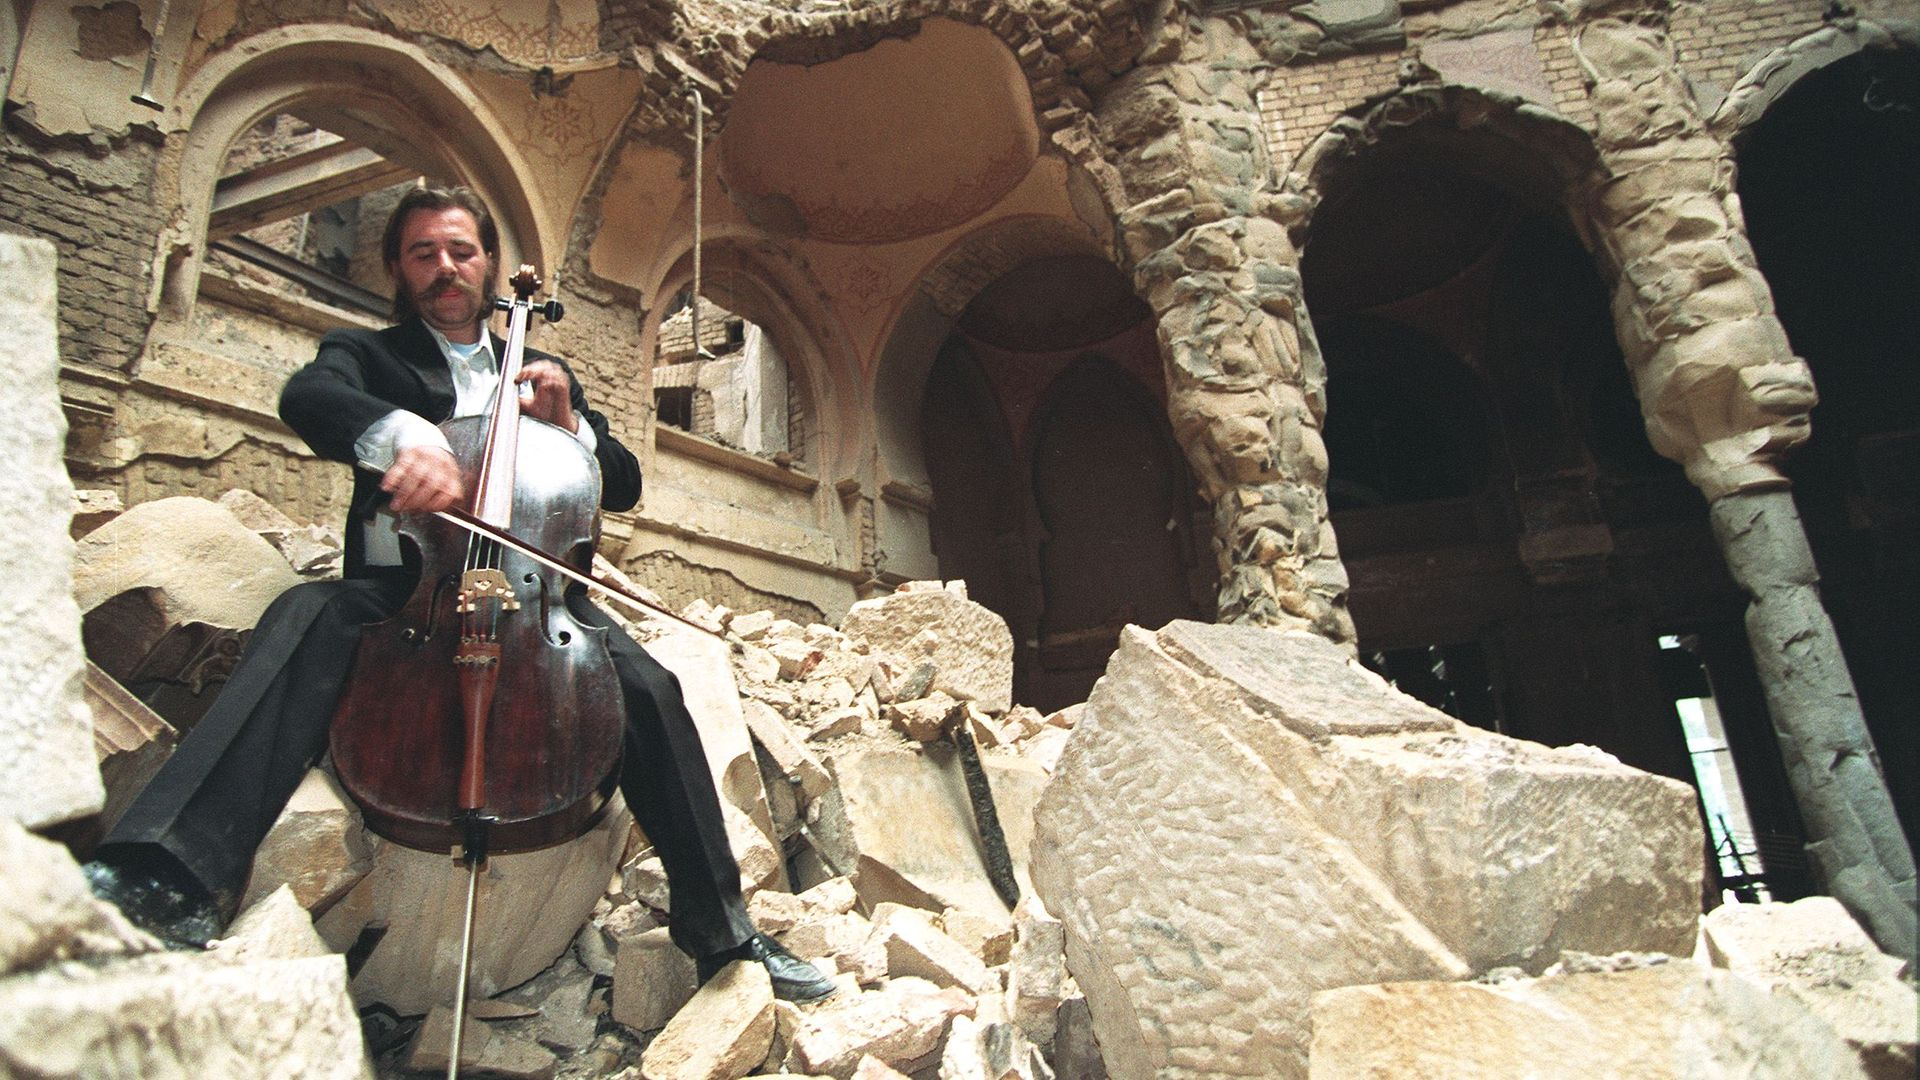 Cellist Vedran Smailovic playing Strauss in the bombed National Library in Sarajevo, in September 1992 shows. (Photo credit should read MICHAEL EVSTAFIEV/AFP via Getty Images) - Credit: AFP via Getty Images